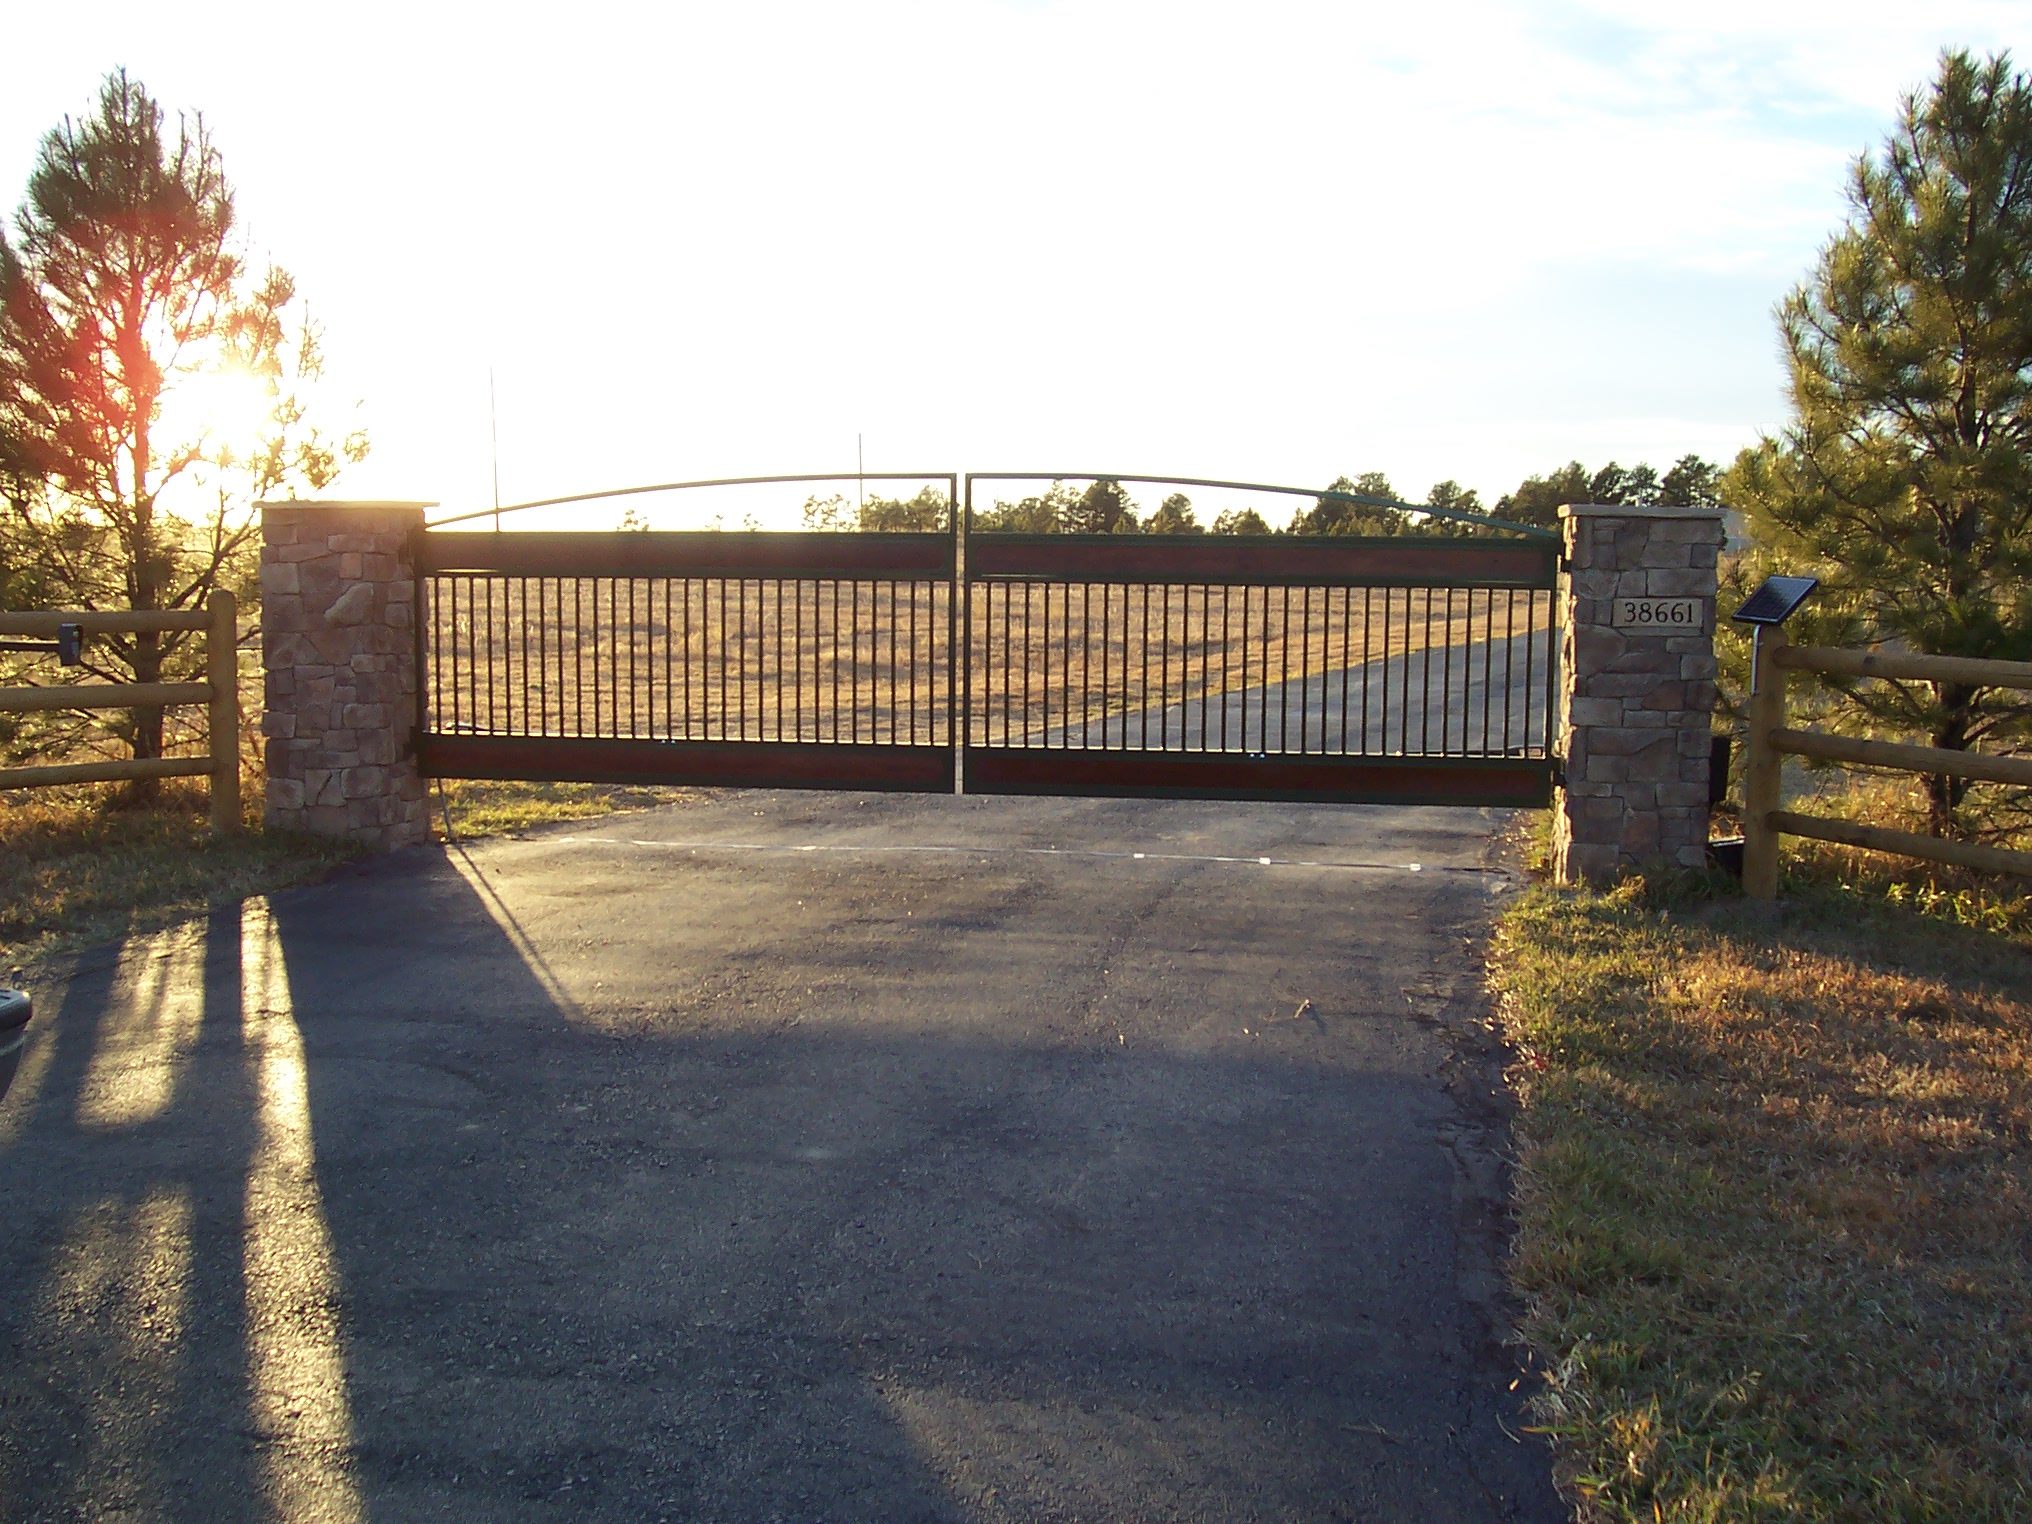 Merchants Metals fence manufacturer and distributor offers a